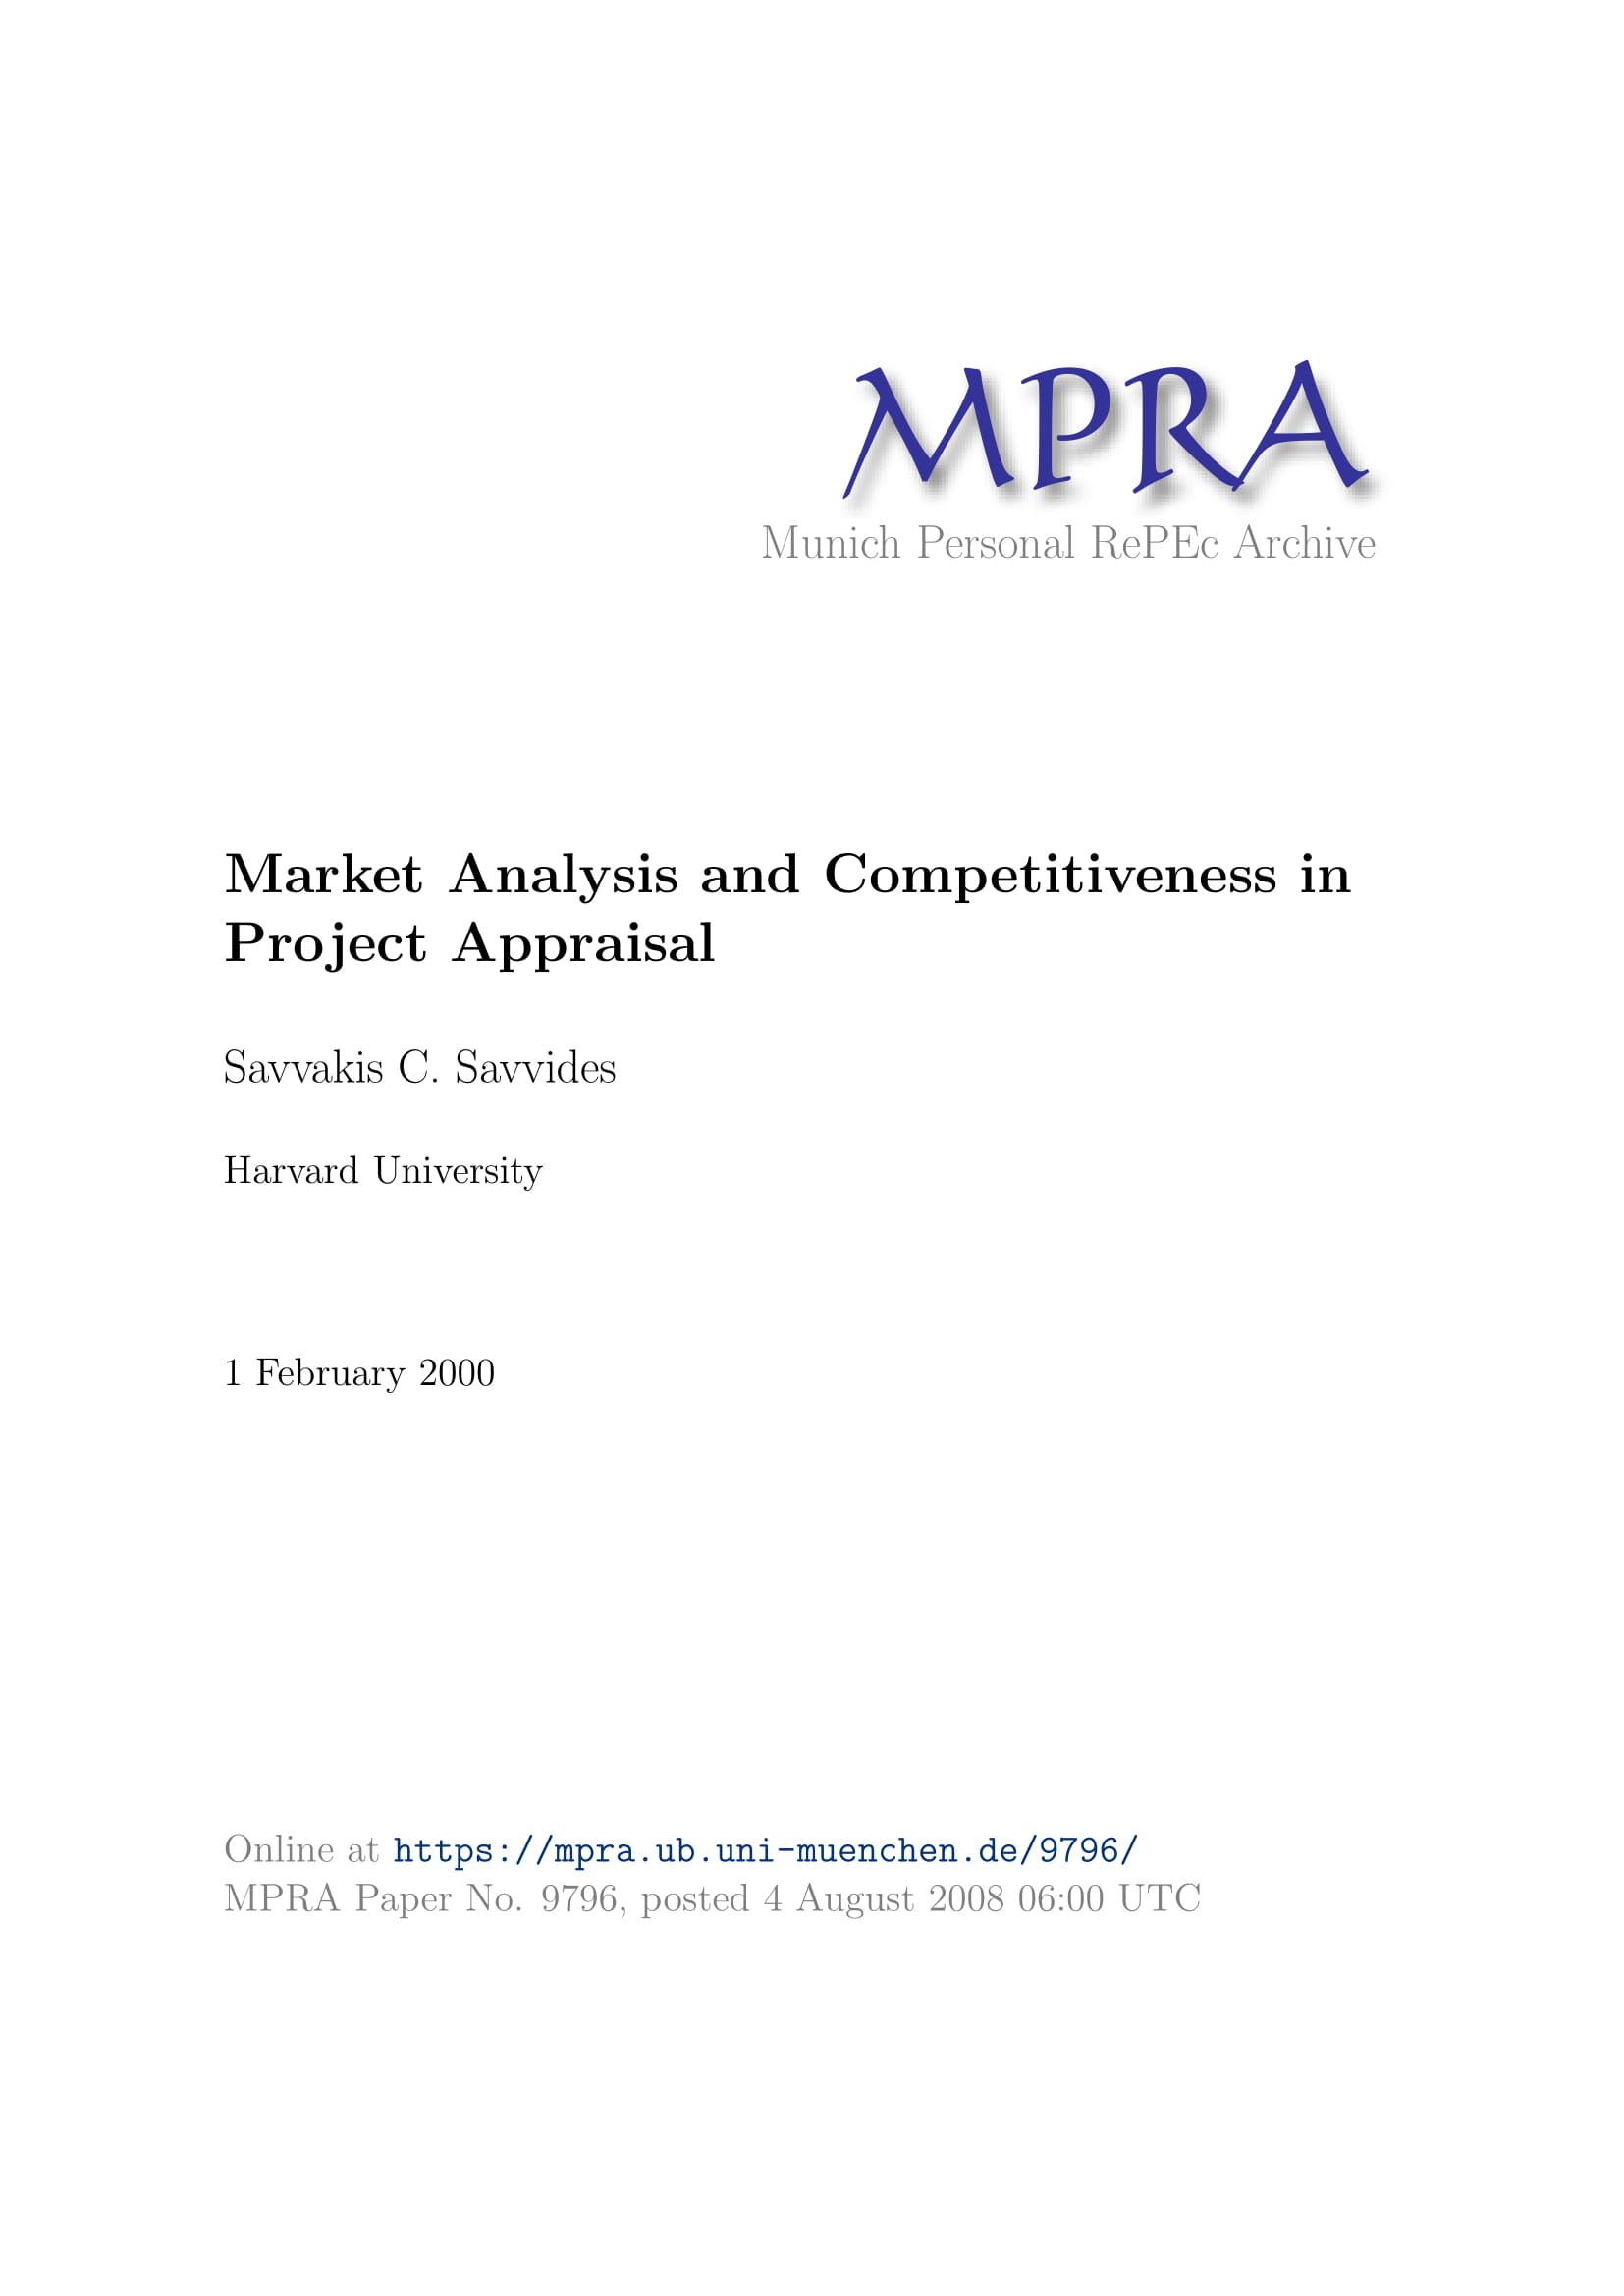 market gap analysis and competitiveness in project appraisal example 01